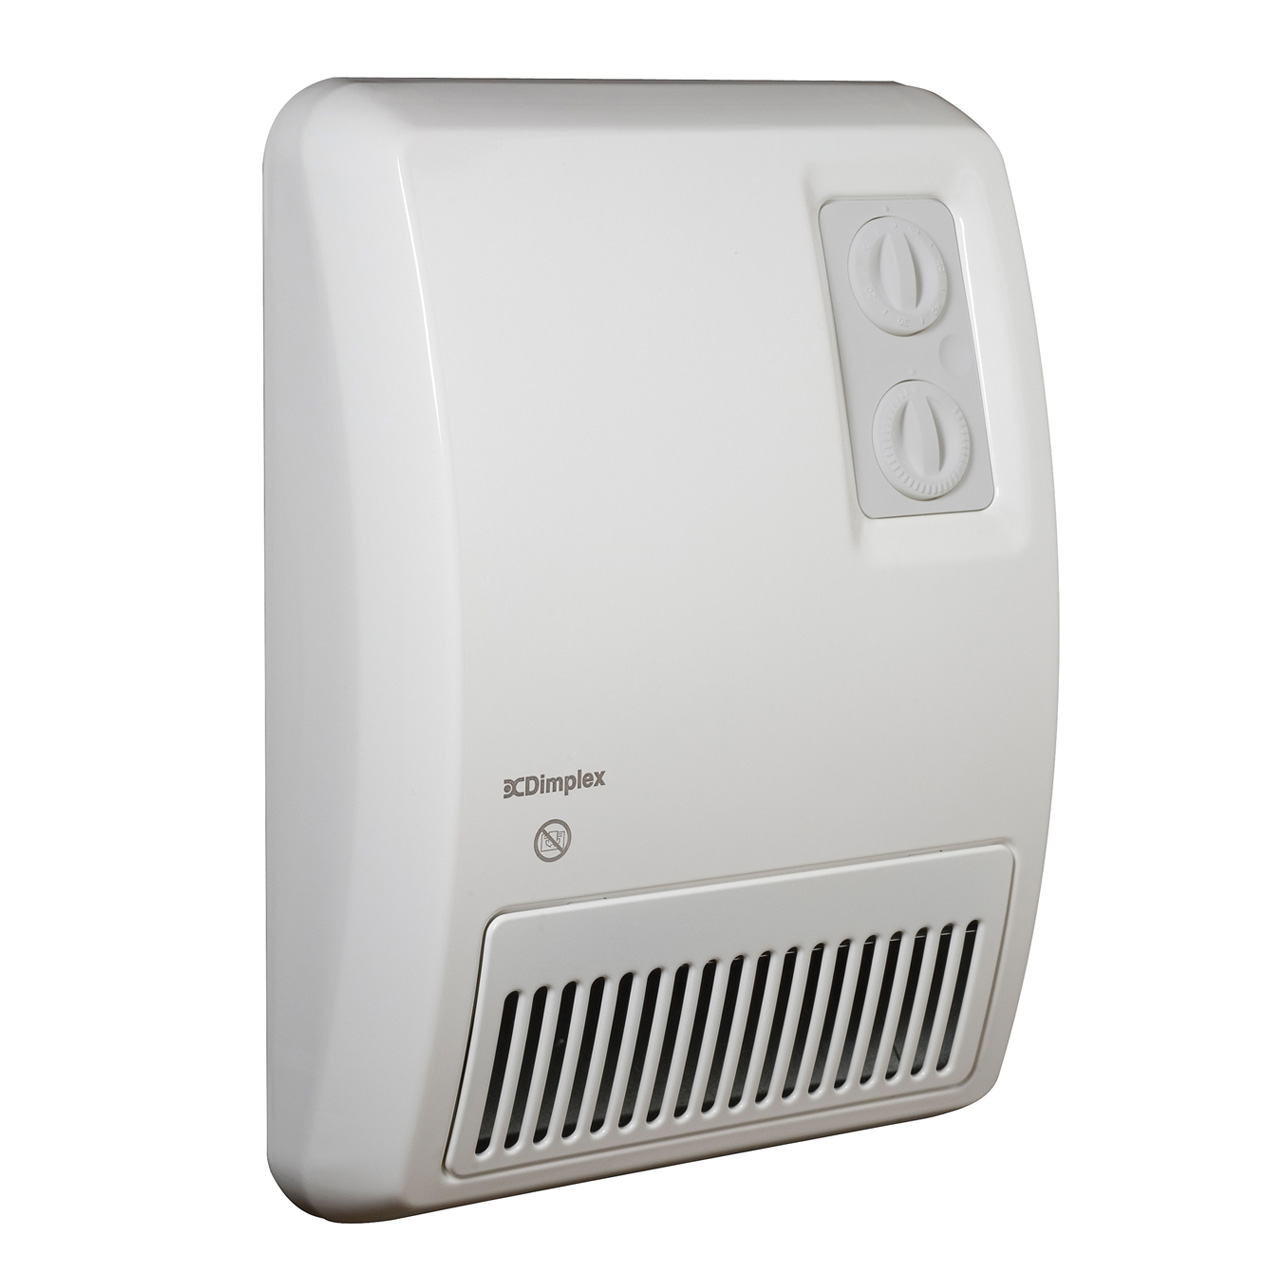 Wall mount space heater to warm up room inside your house for Heat bathroom